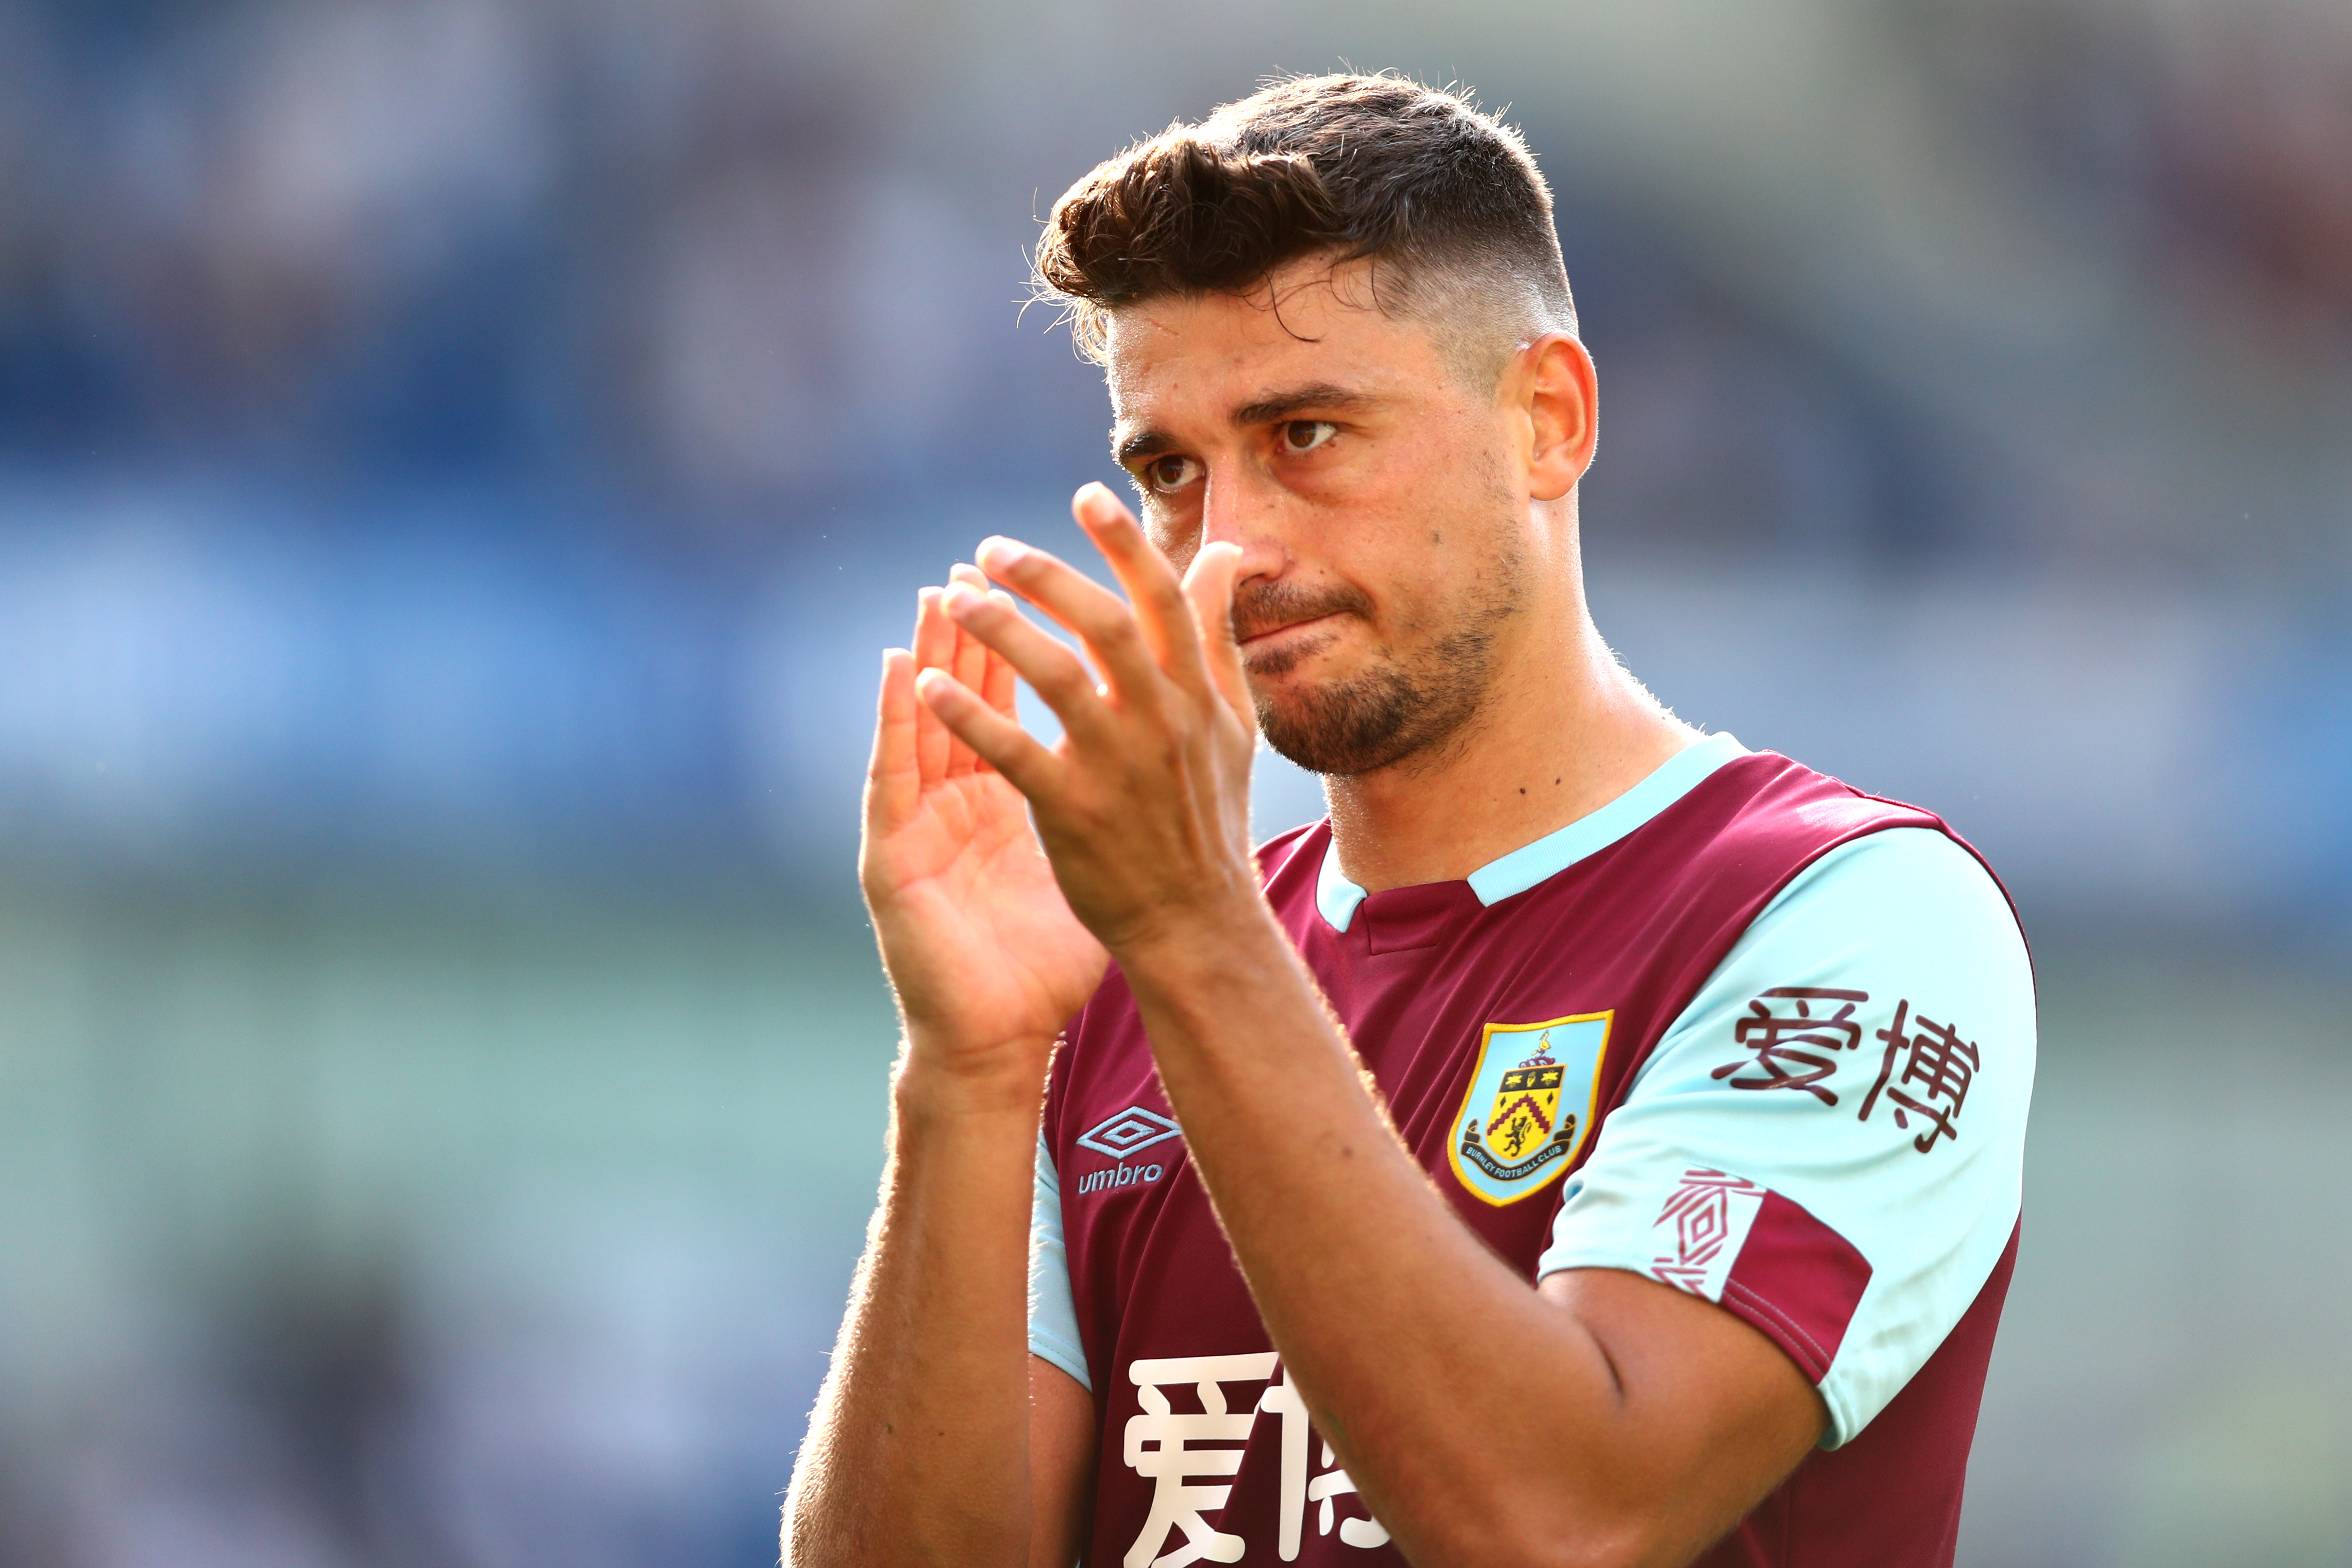 Aston Villa vs Burnley match preview: Can the Villa get back on track?